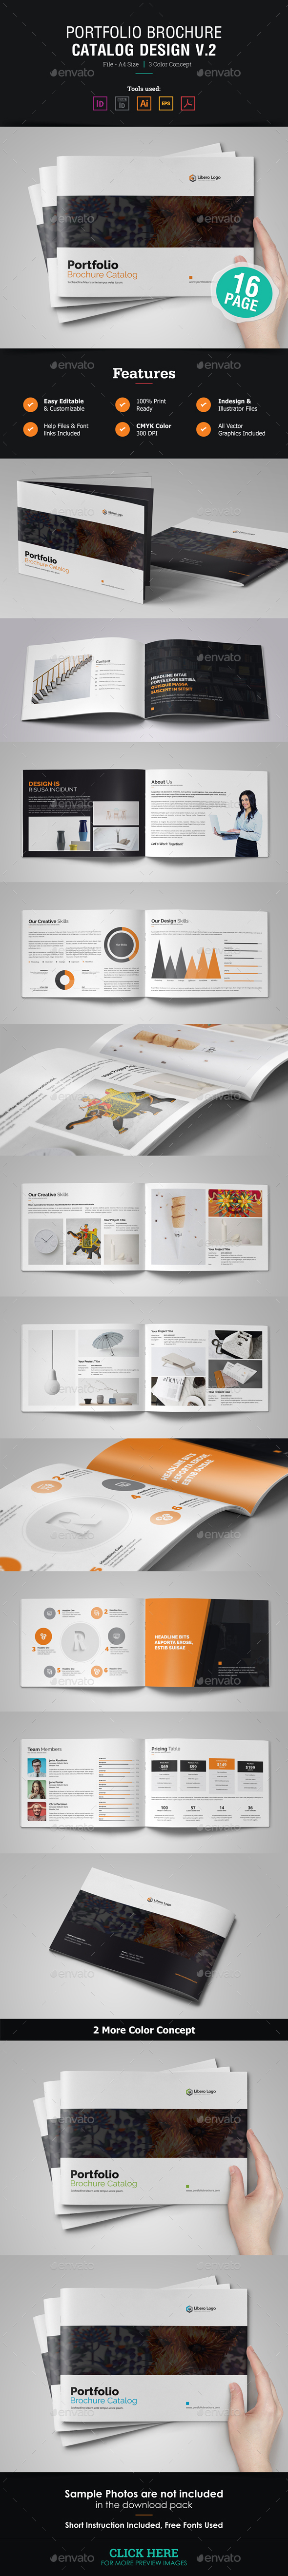 Portfolio Brochure Template v2 - Corporate Brochures